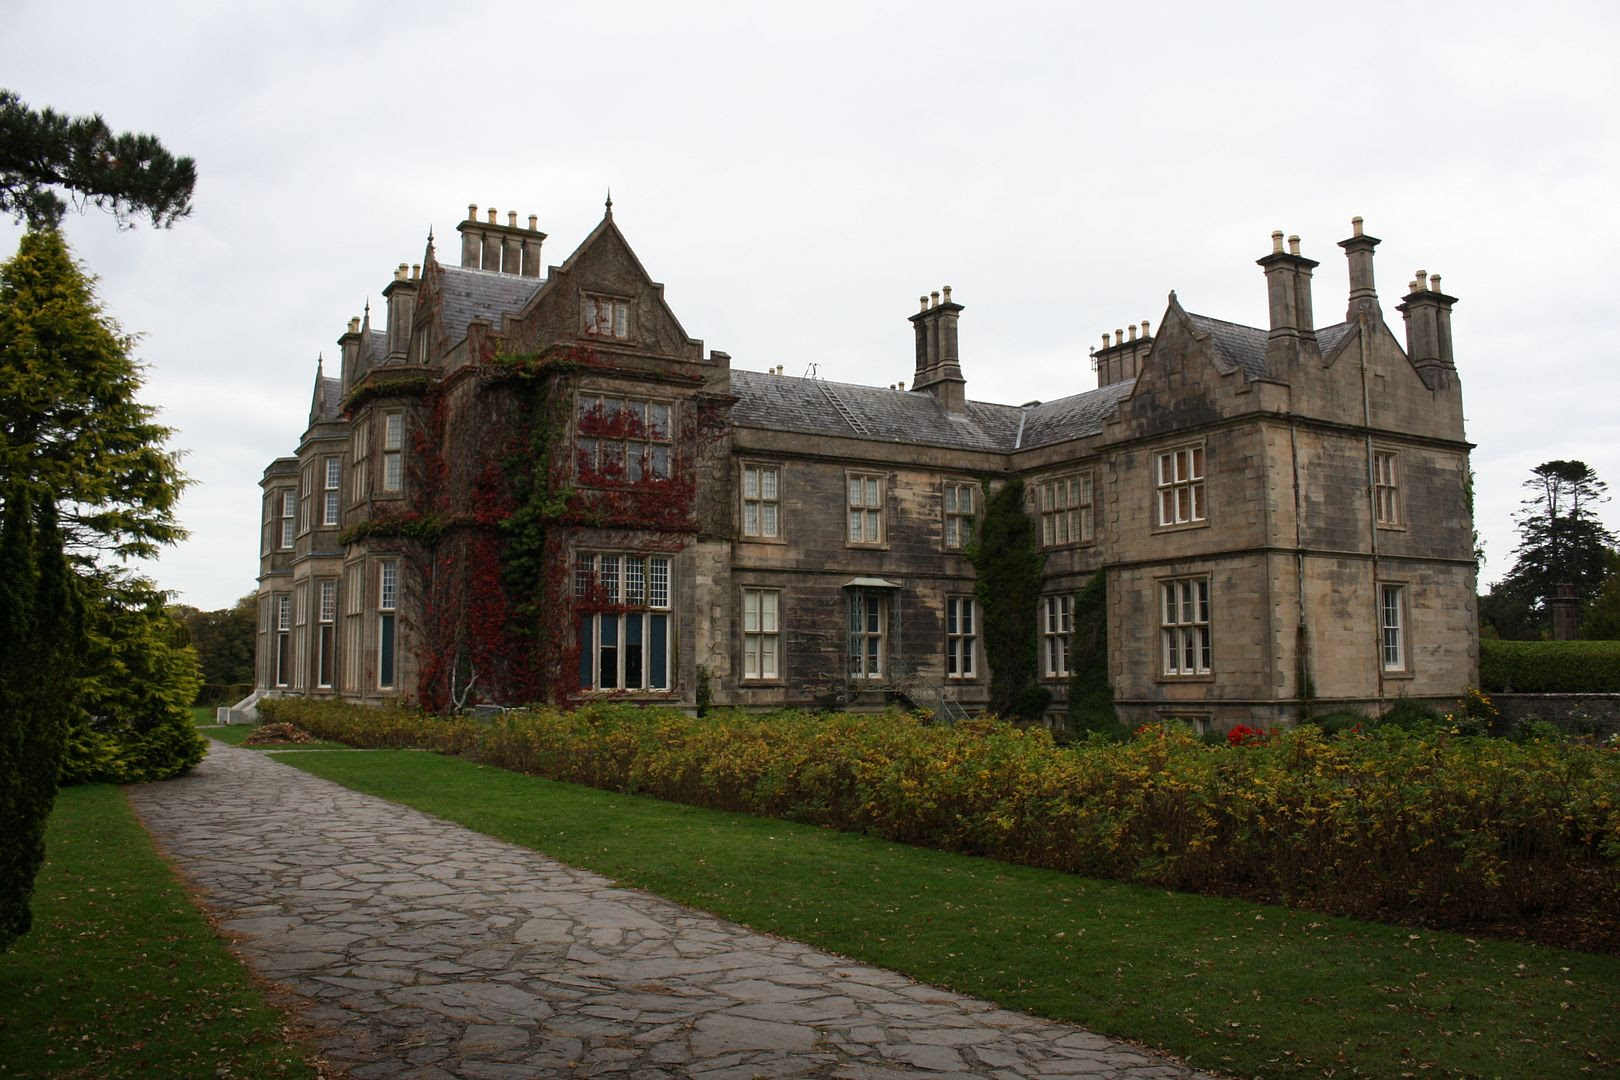 Muckross House near Killarney, Ireland photo IMG_3523_zps3mgnutrx.jpg